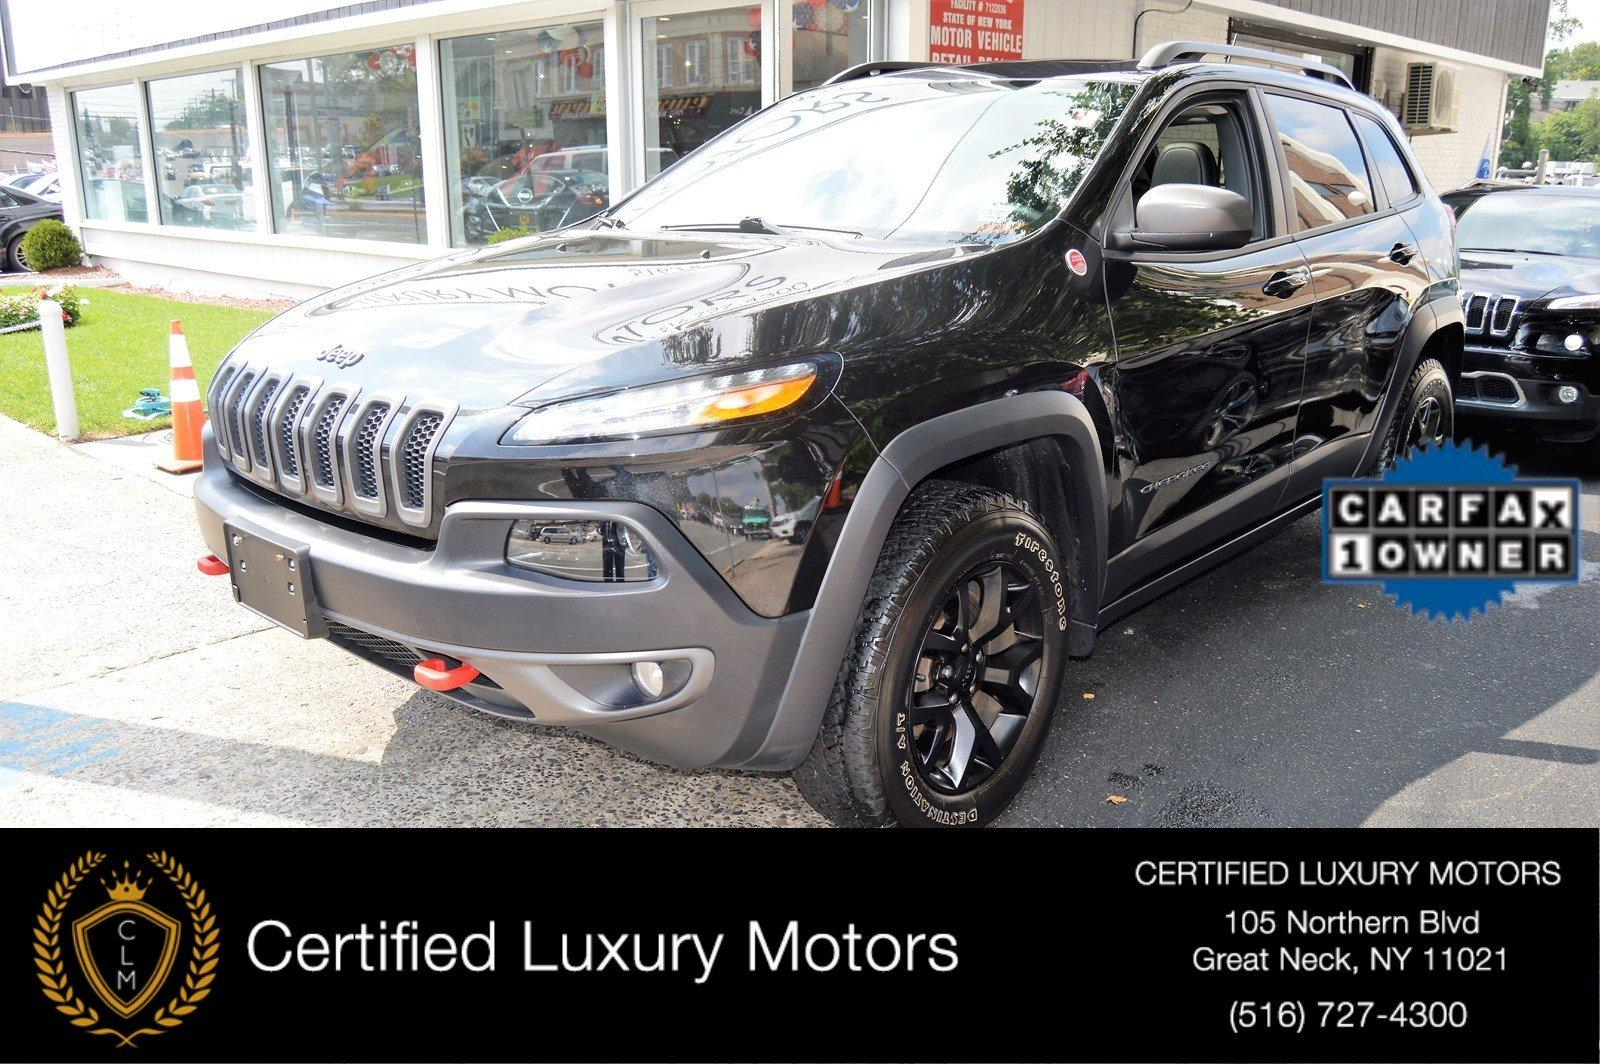 trailhawk jeep why truck the but fun trail face functional features com bangshift cherokee bangshiftxl wtf